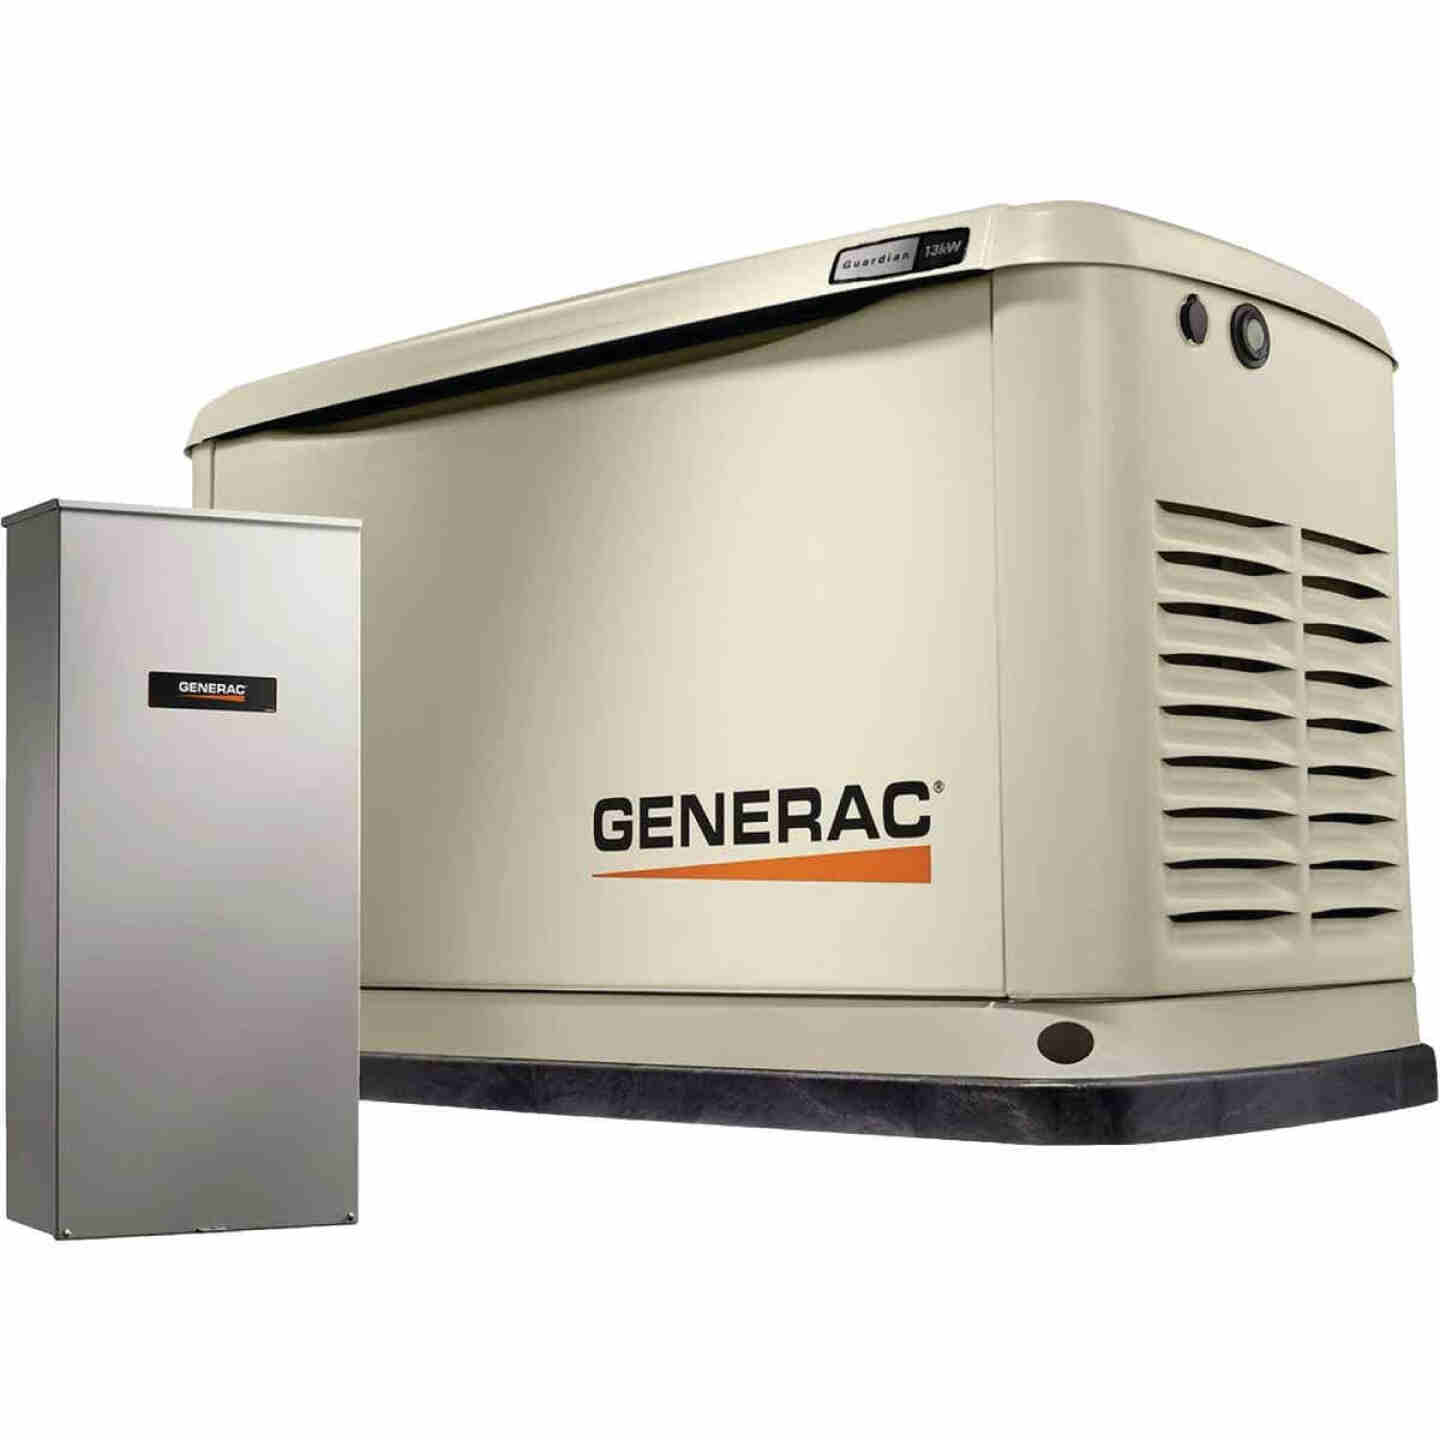 Generac Guardian WiFi 13,000W Natural Gas/LP Home Standby Generator Image 1